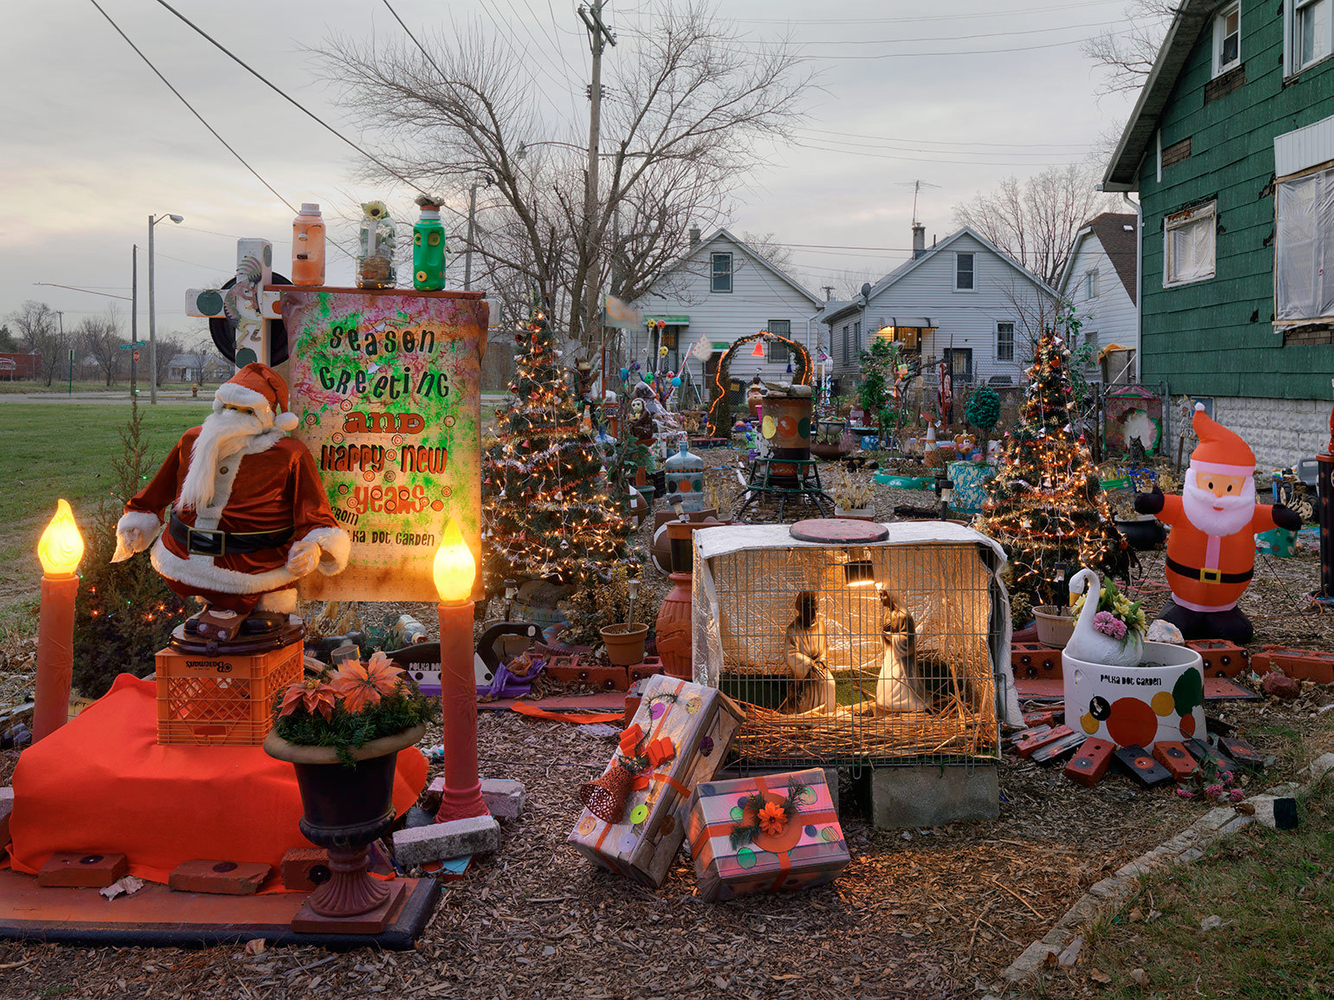 Christmas Decorations, Polka-Dot Garden, Eastside, Detroit 2014